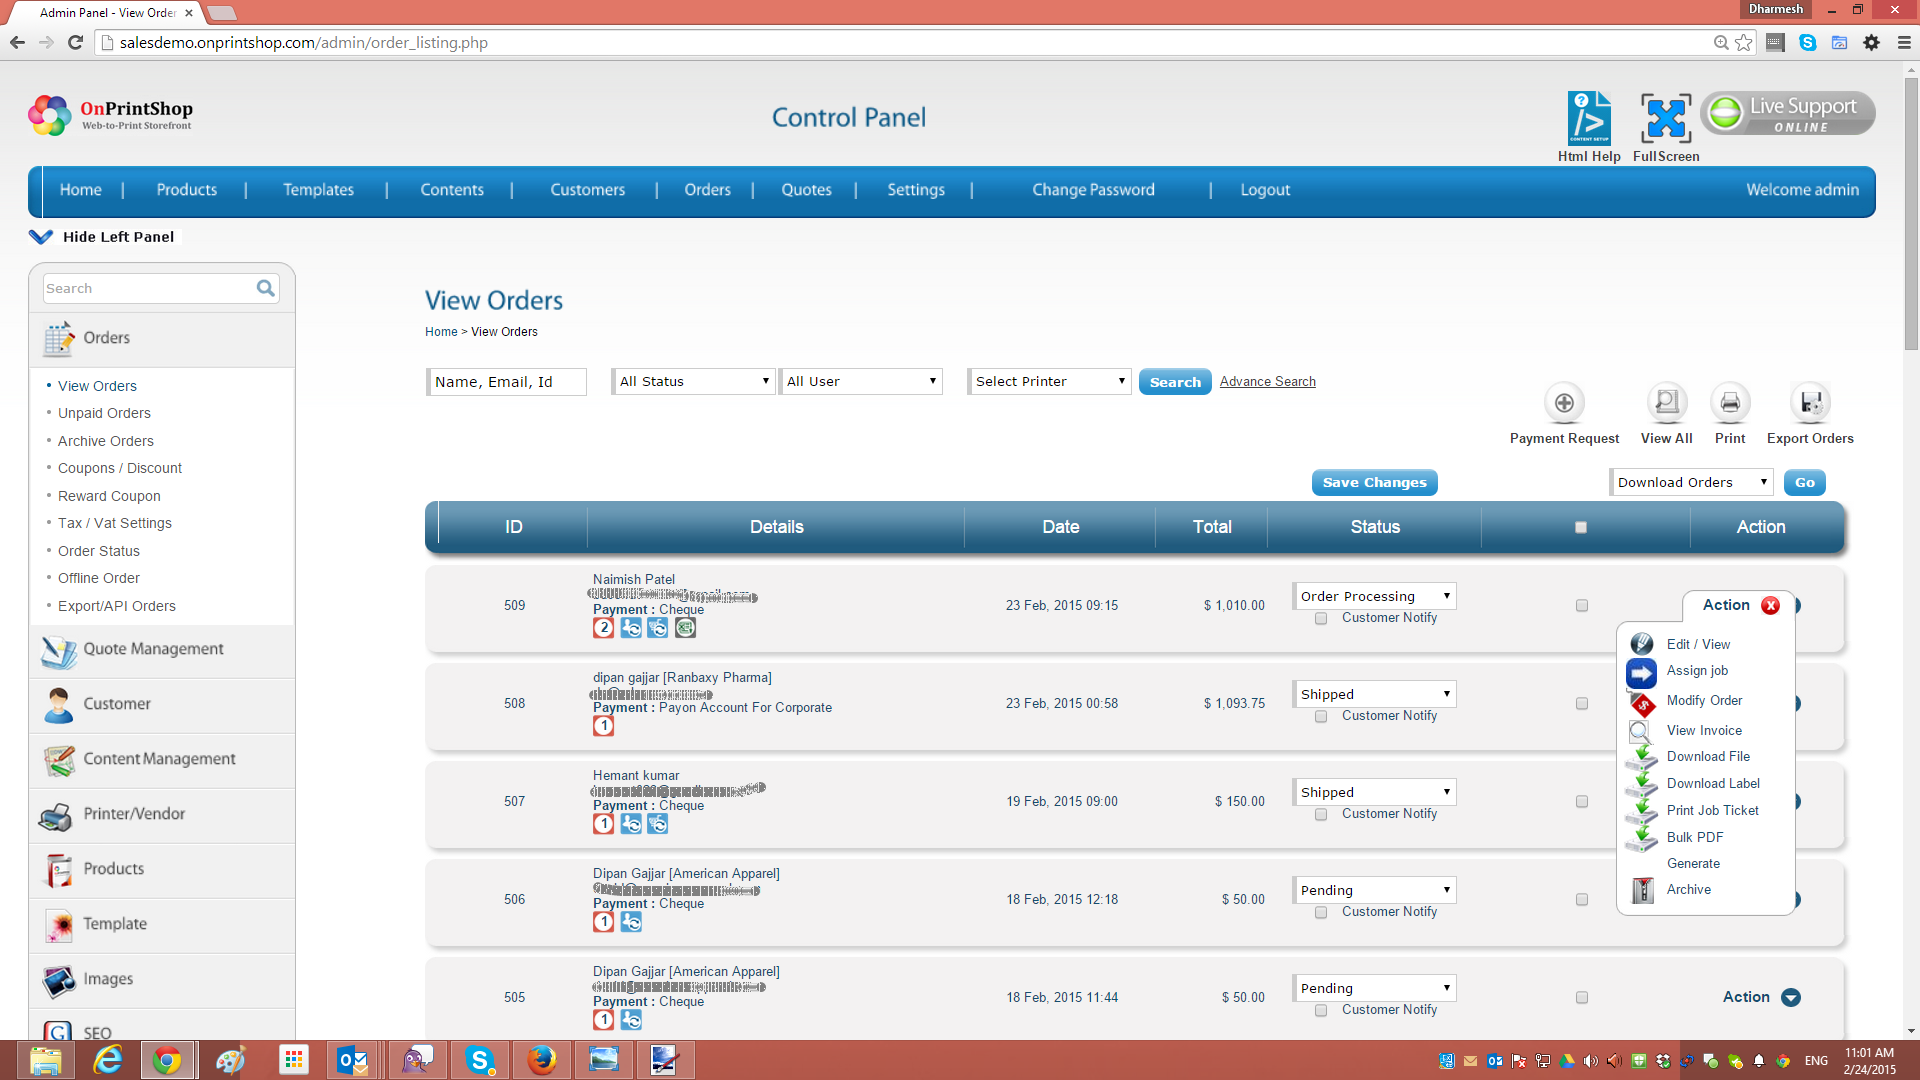 OnPrintShop Web2Print Storefront Solution Demo - Order Management for your Print Store